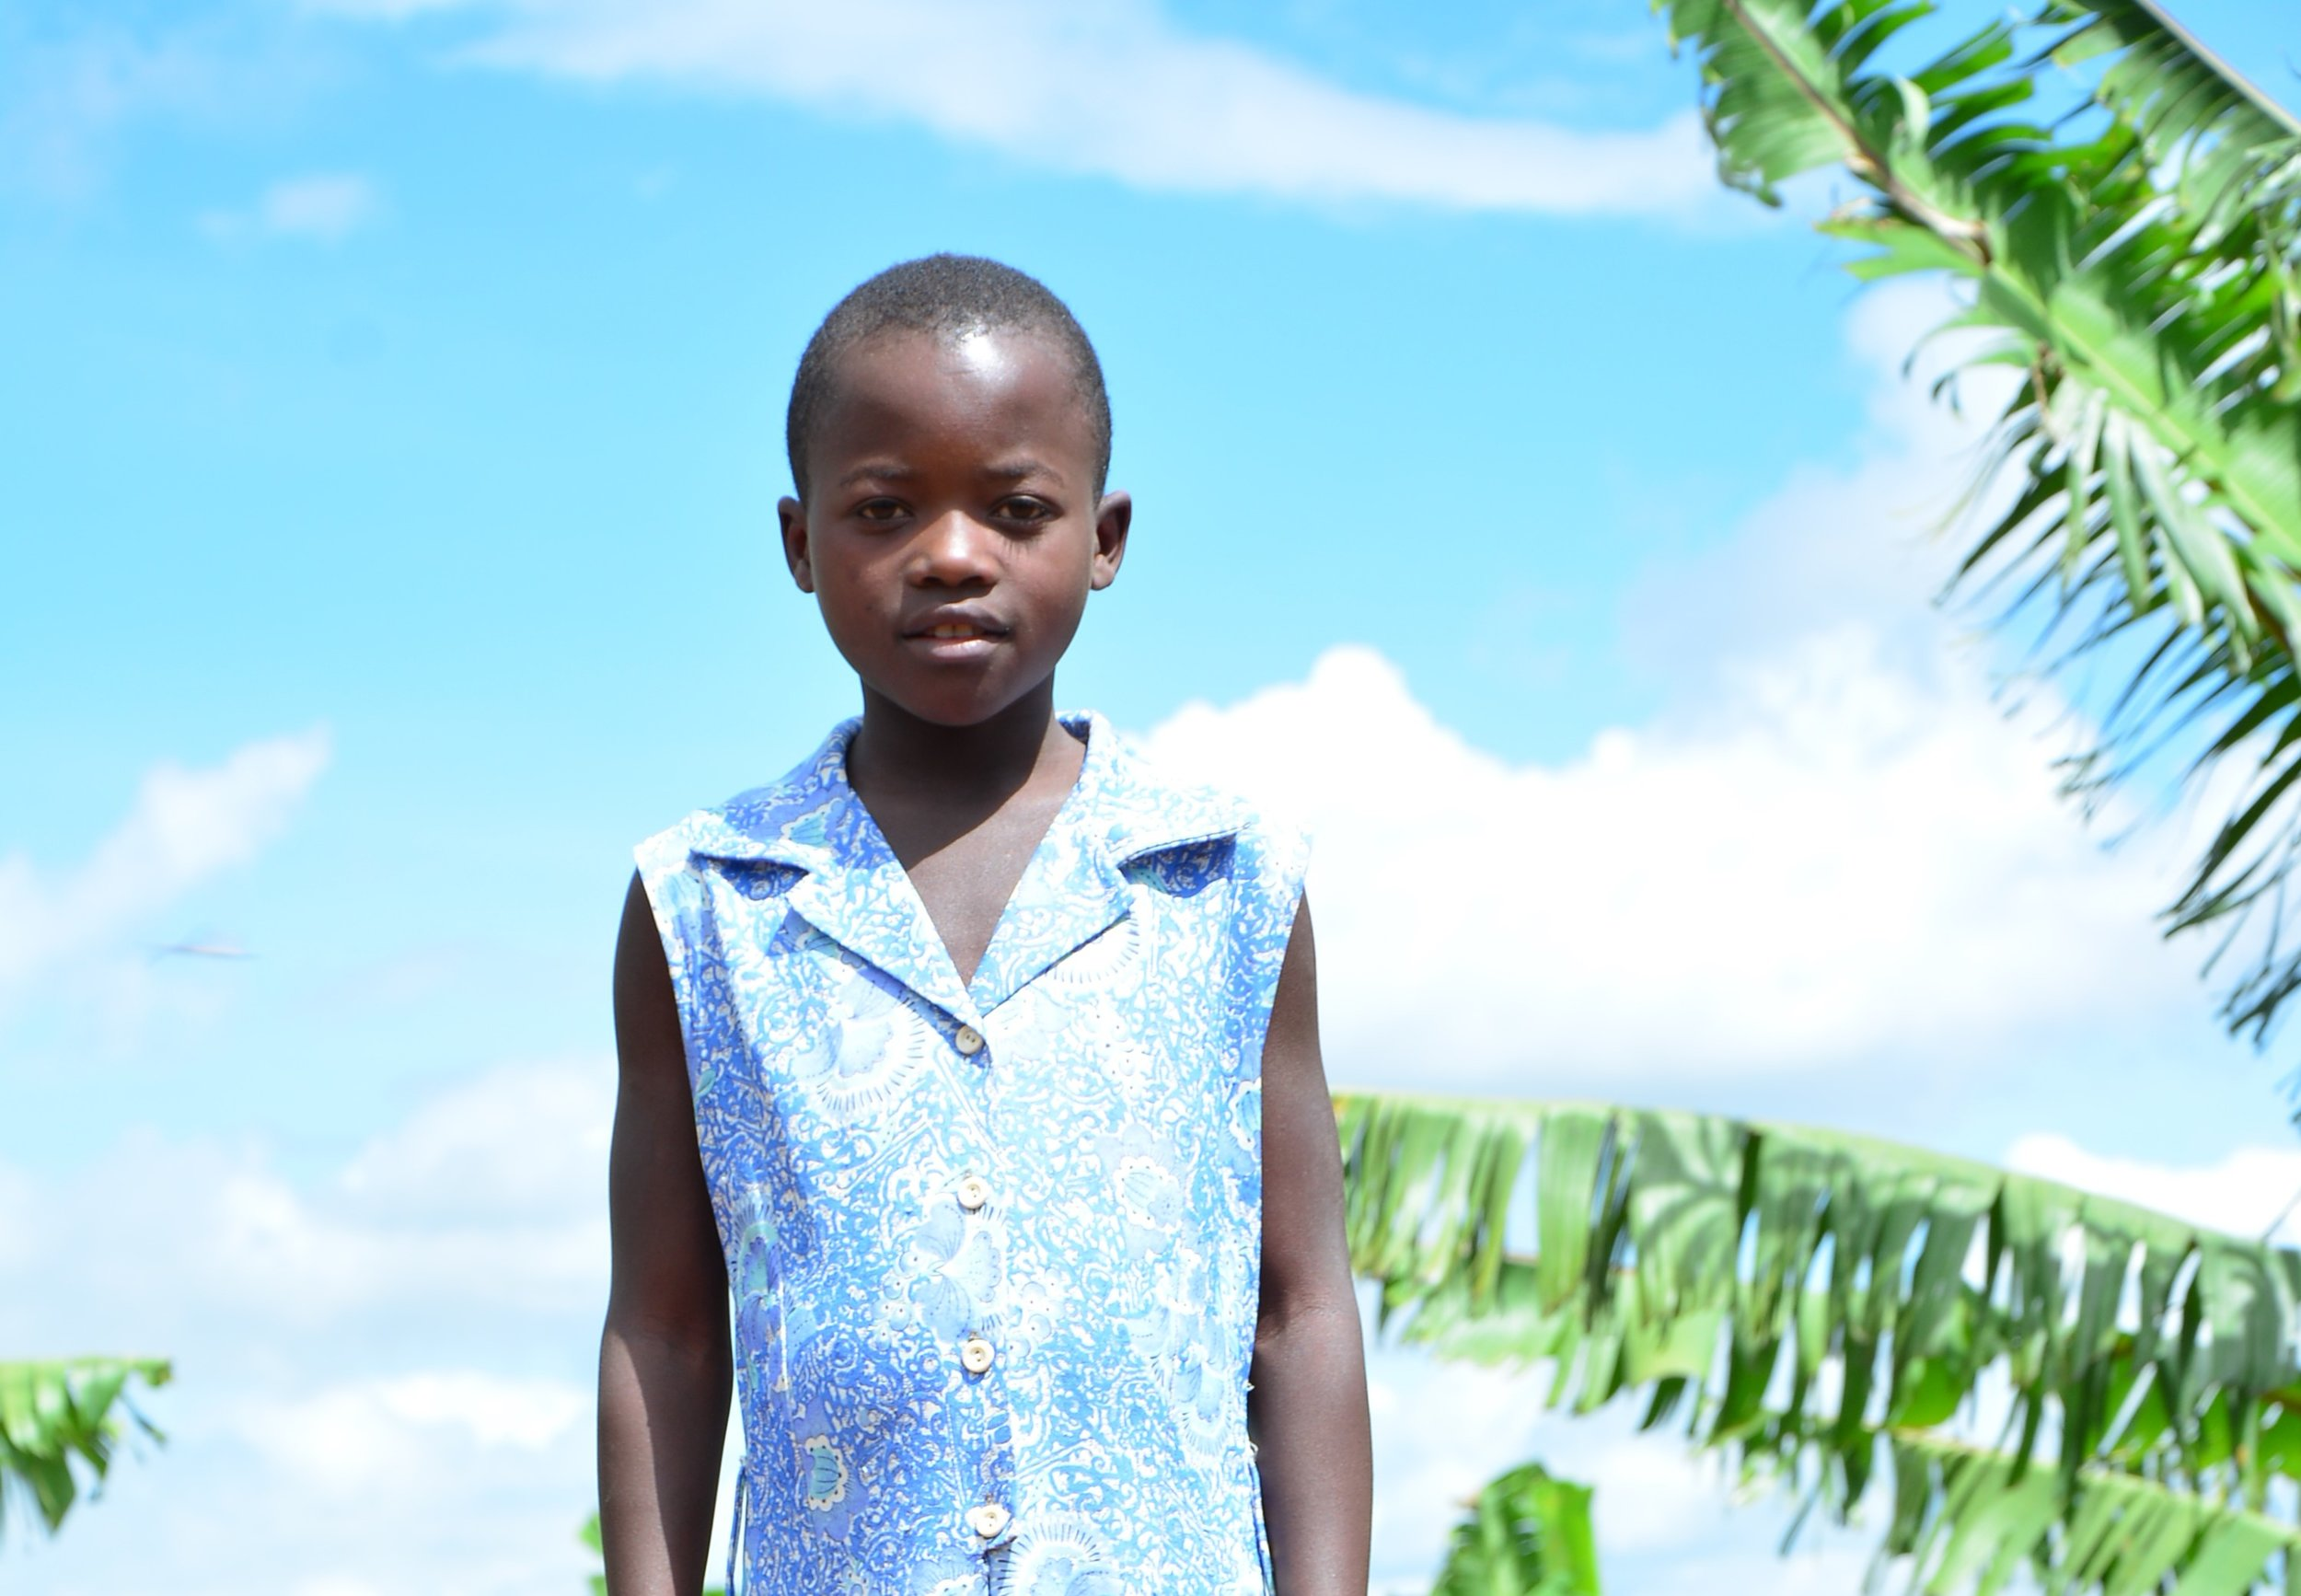 Clementine Uwineza, a young girl of 11 who dreams of becoming a teacher